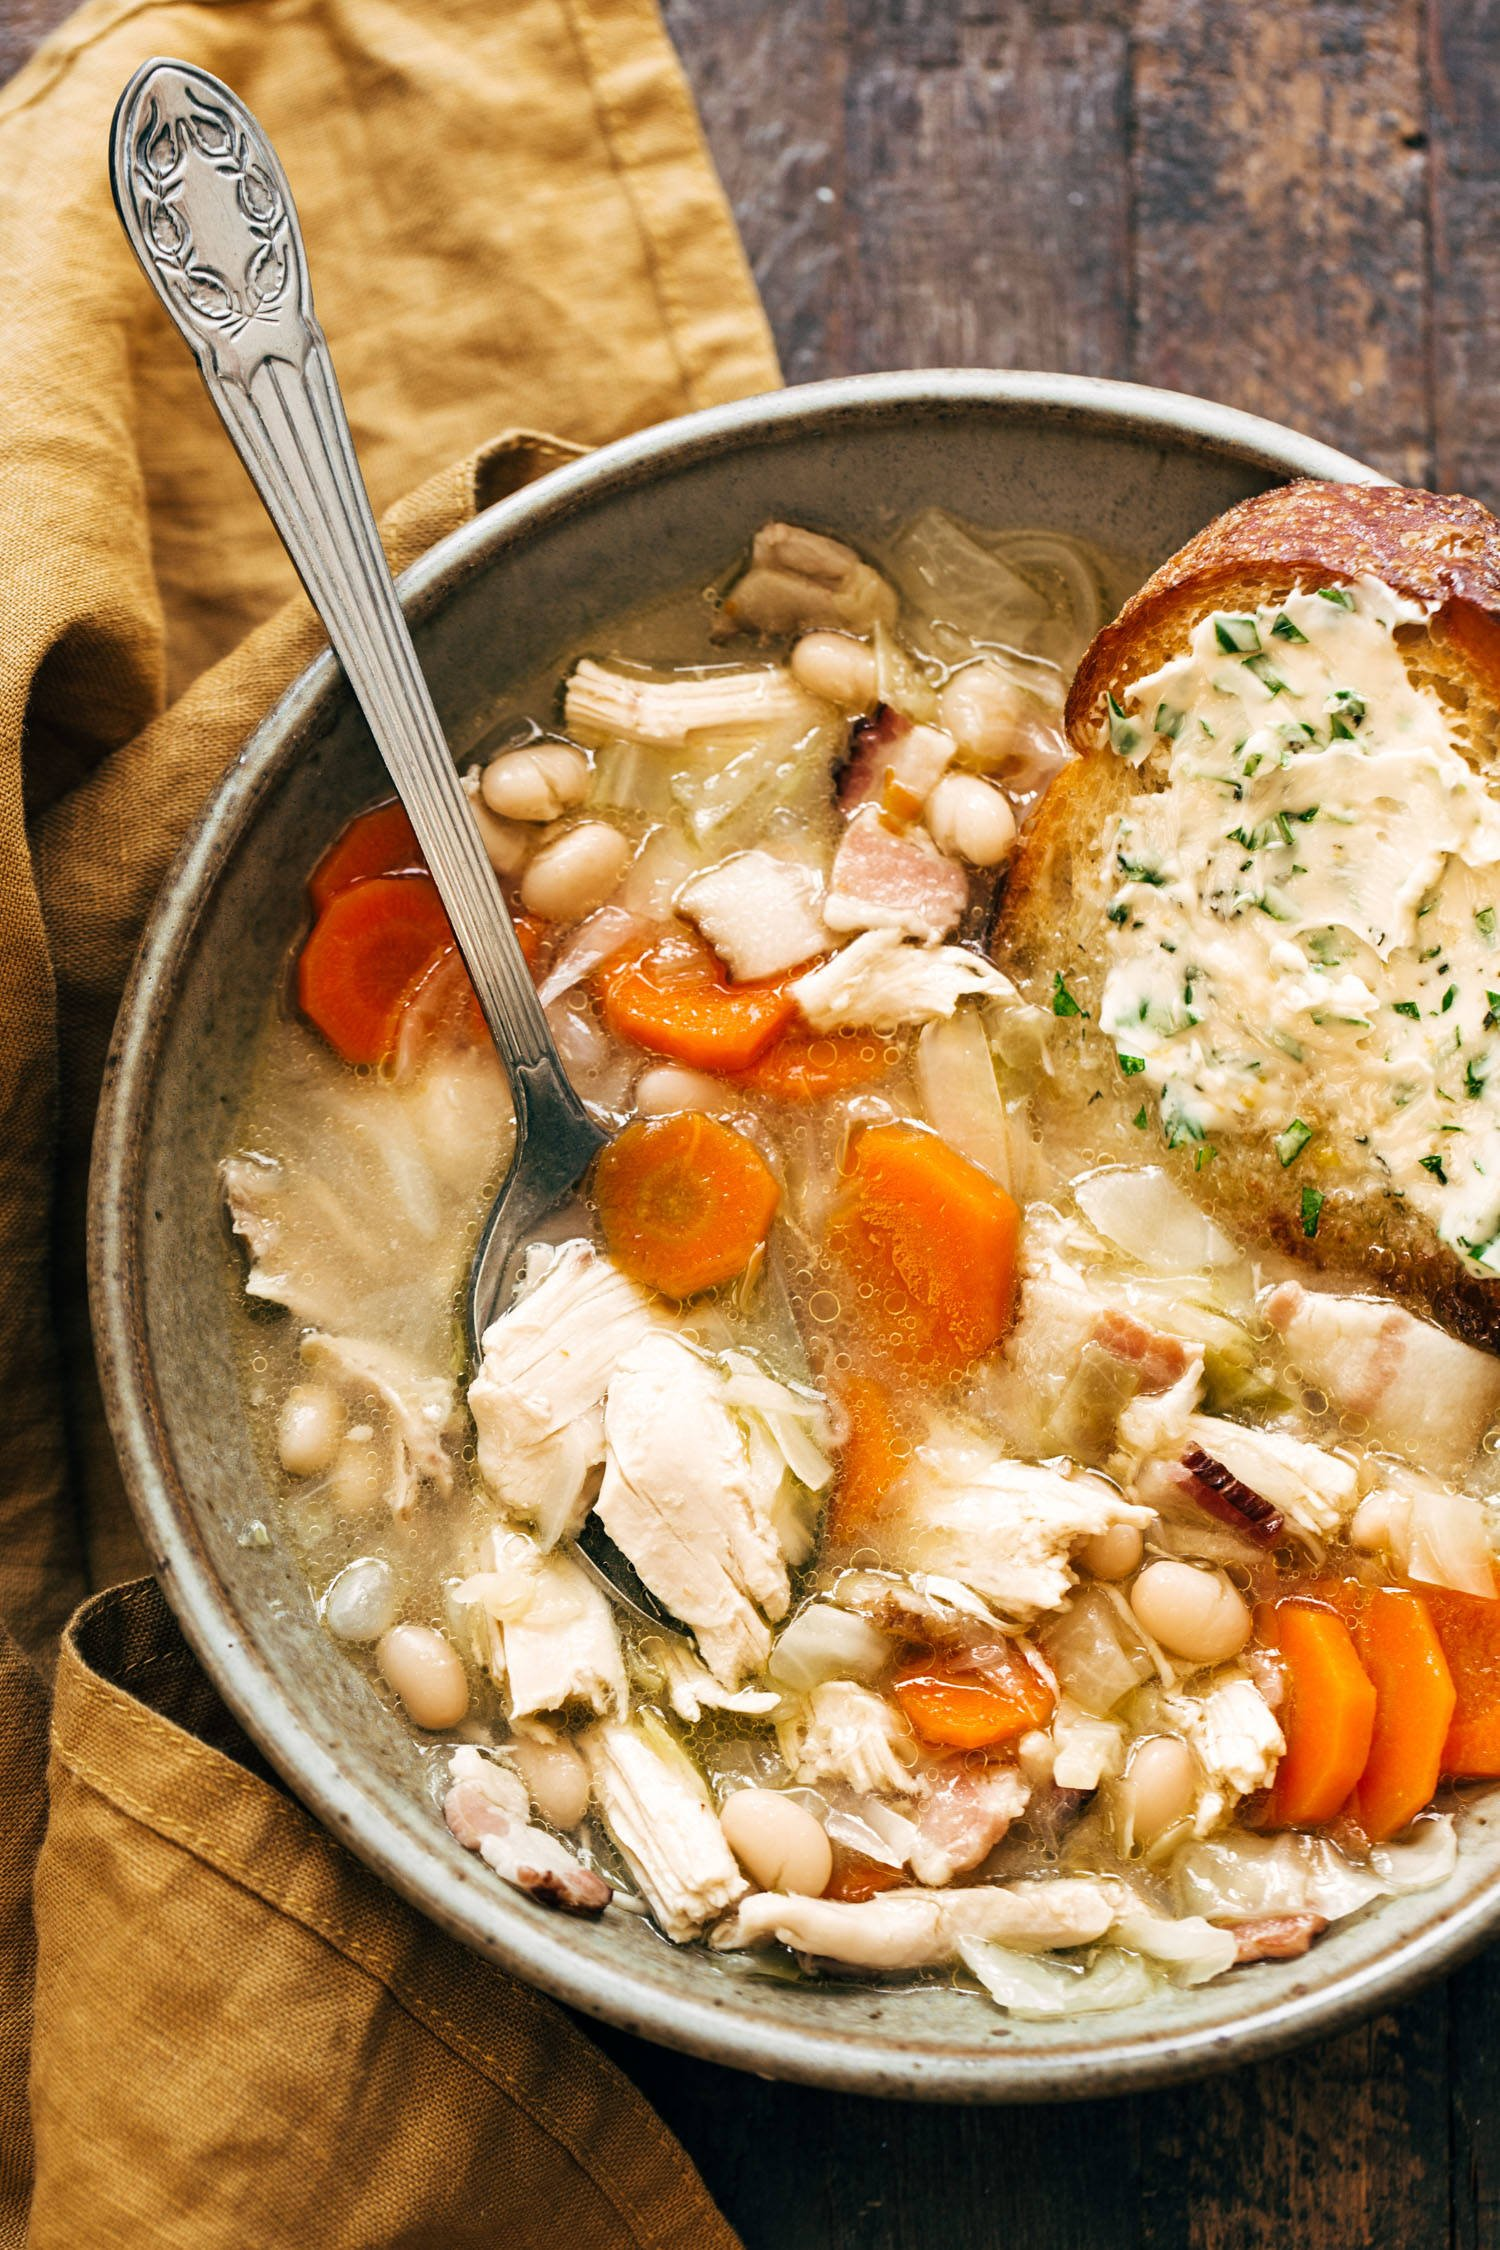 Chicken stew in a bowl with a spoon and garlic herb butter bread.